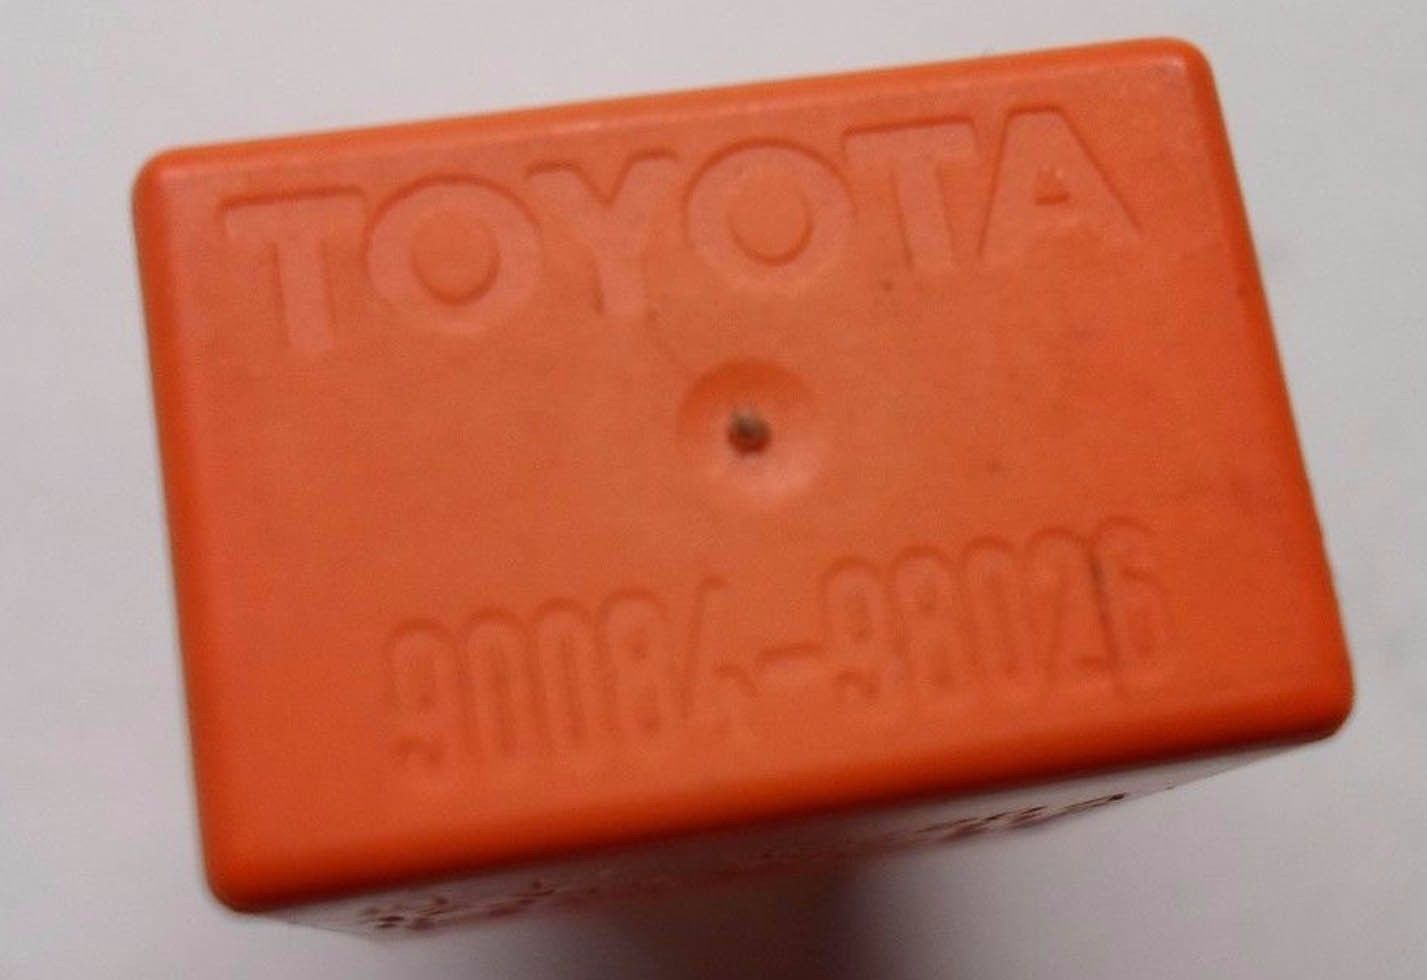 TOYOTA  RELAY 90084-98026 BOSCH 0332207112 TESTED 6 MONTH WARRANTY FREE SHIP  T2